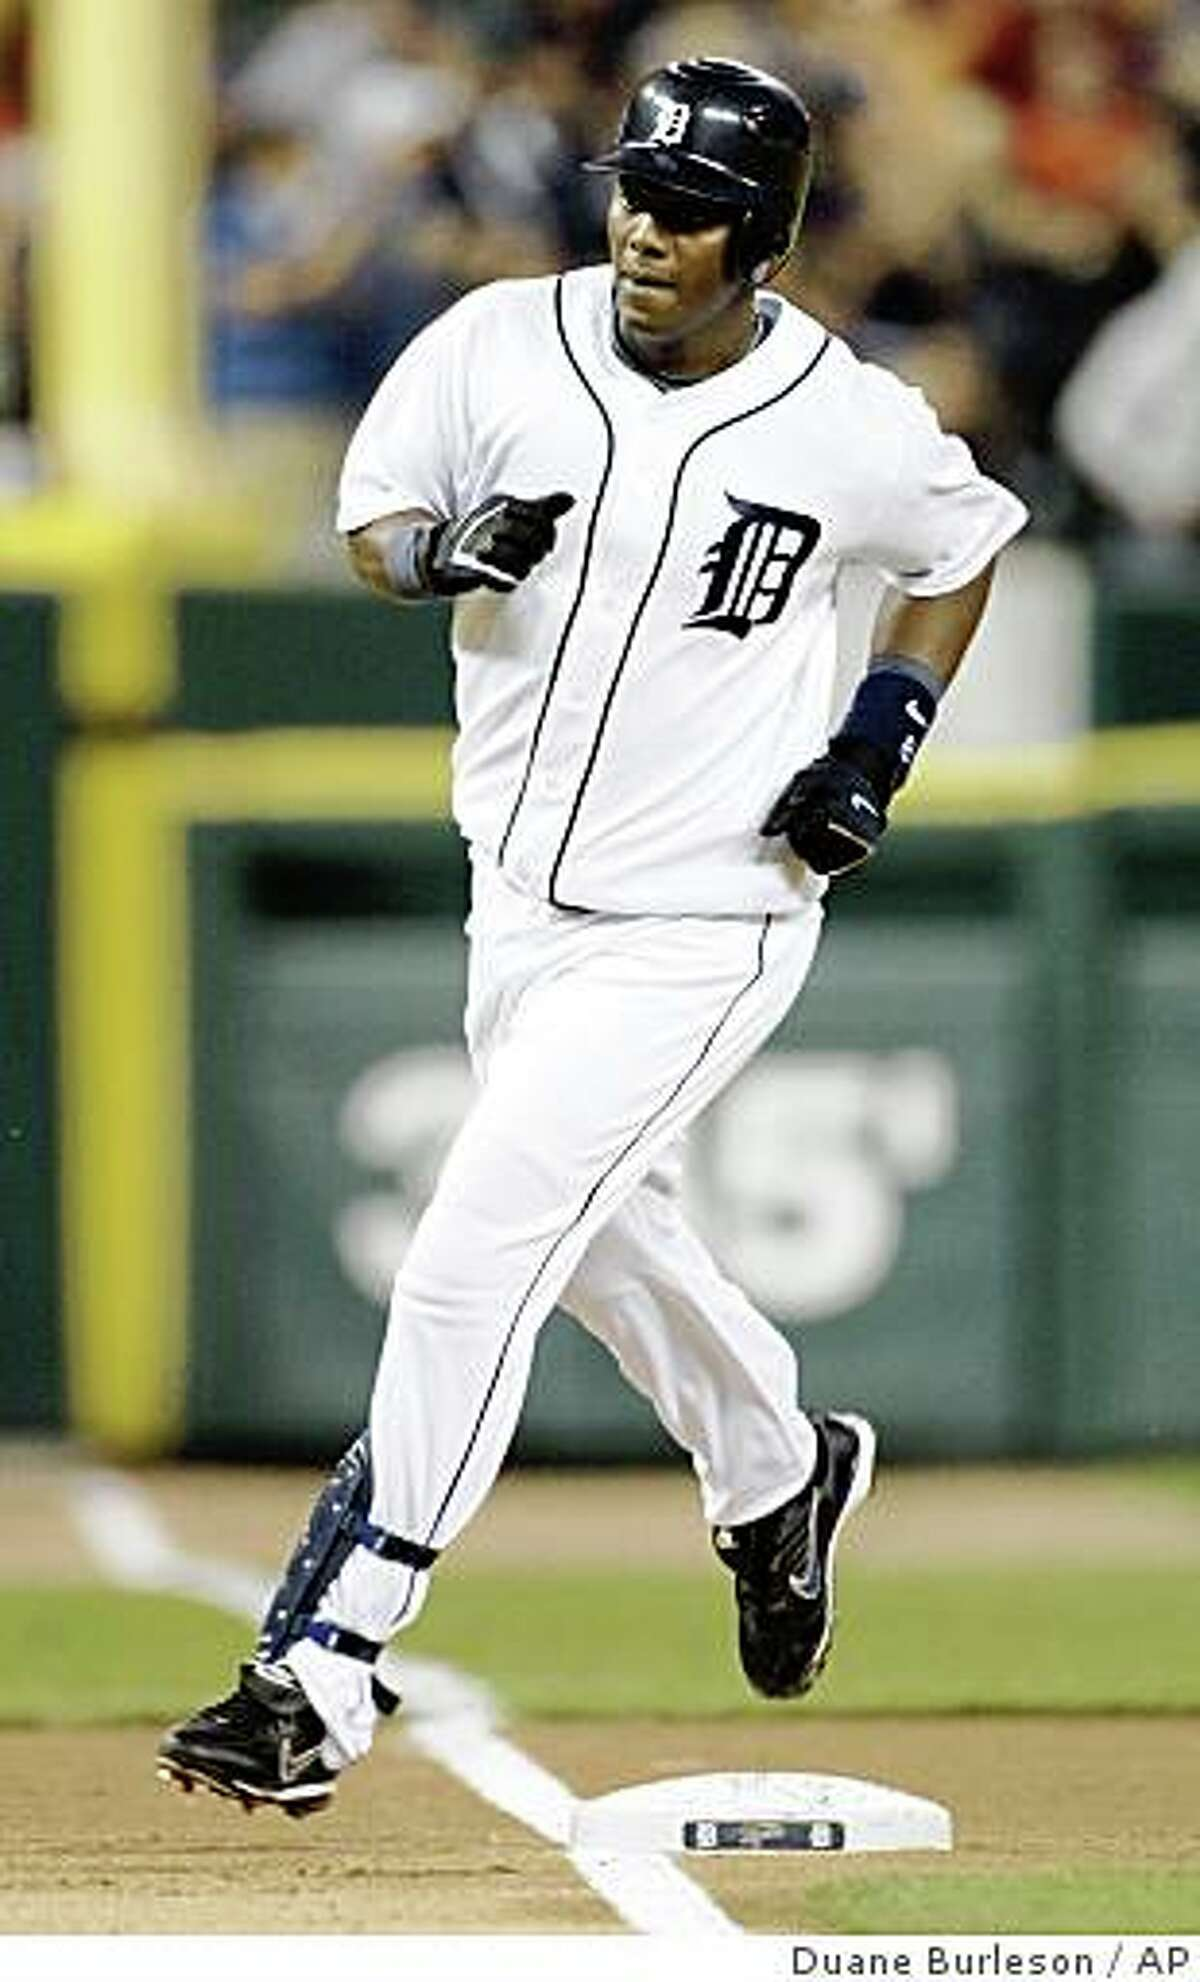 Detroit Tigers' Edgar Renteria rounds the bases after hitting a solo home run off Oakland Athletics starter Dan Meyer in the third inning of a baseball game Saturday, Aug. 9, 2008, in Detroit.